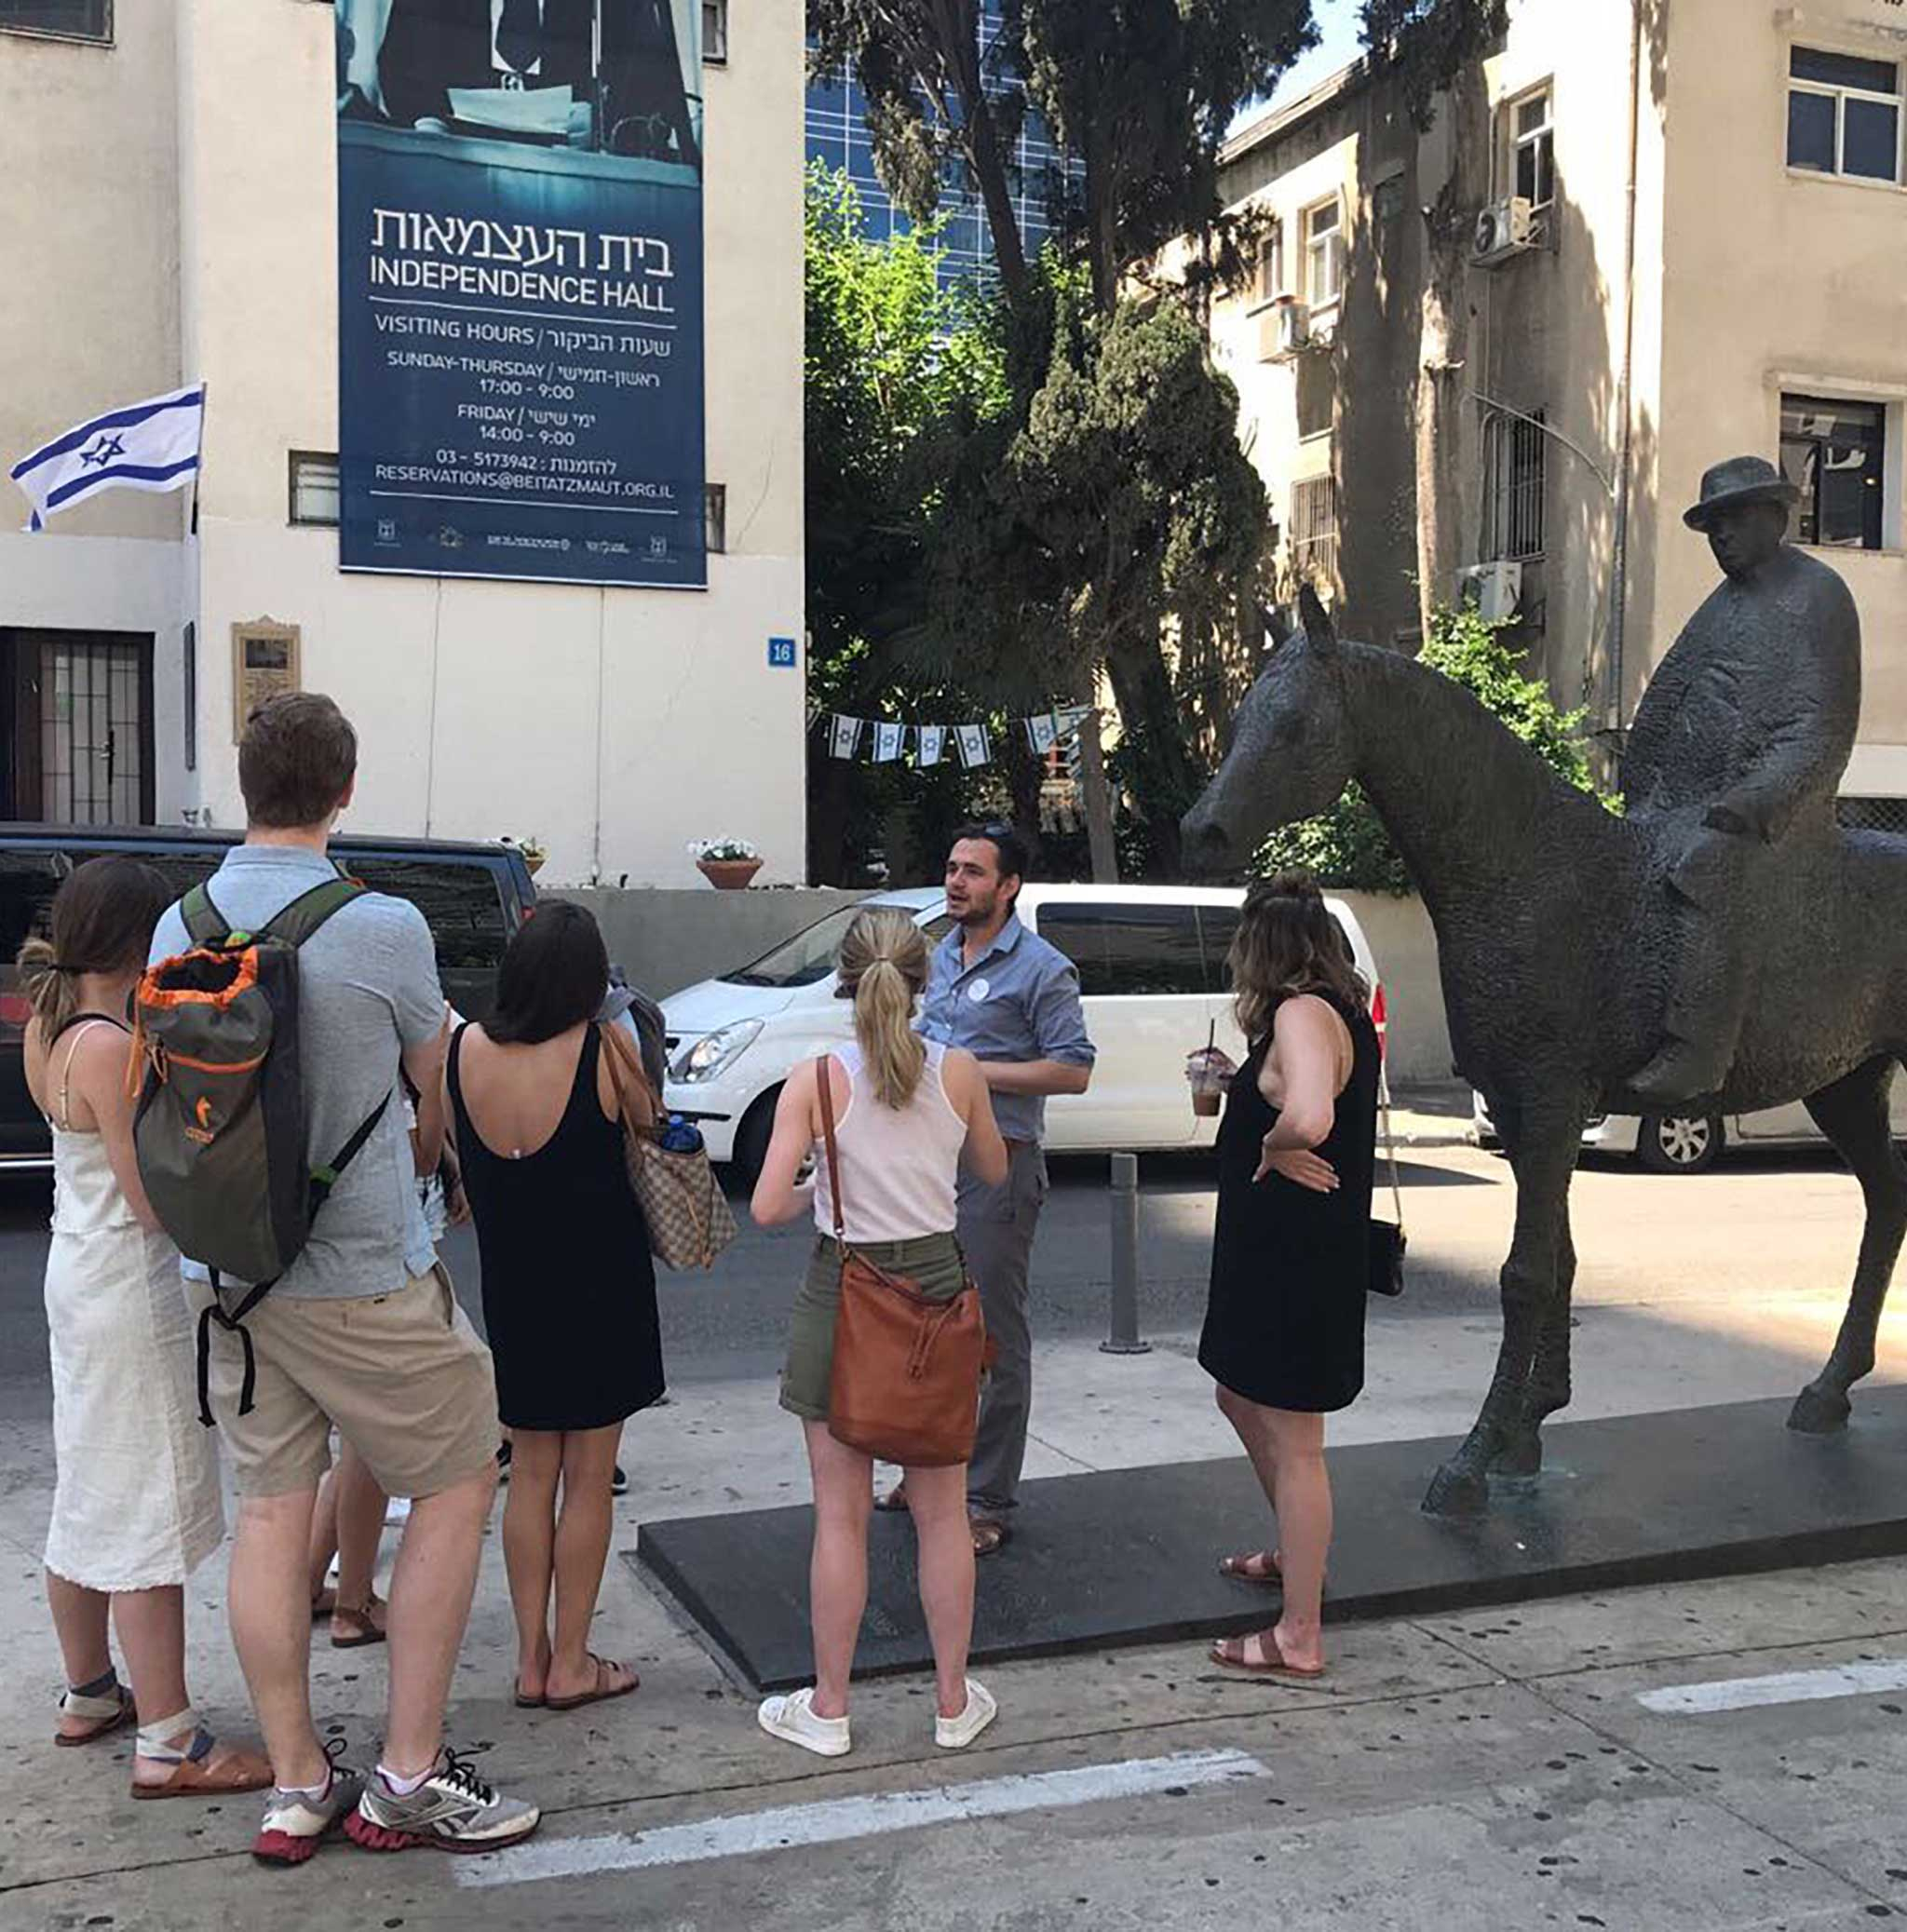 Dizengoff House on Tel Aviv audio tour The Trail of Independence: Tracing the origins of modern Tel Aviv